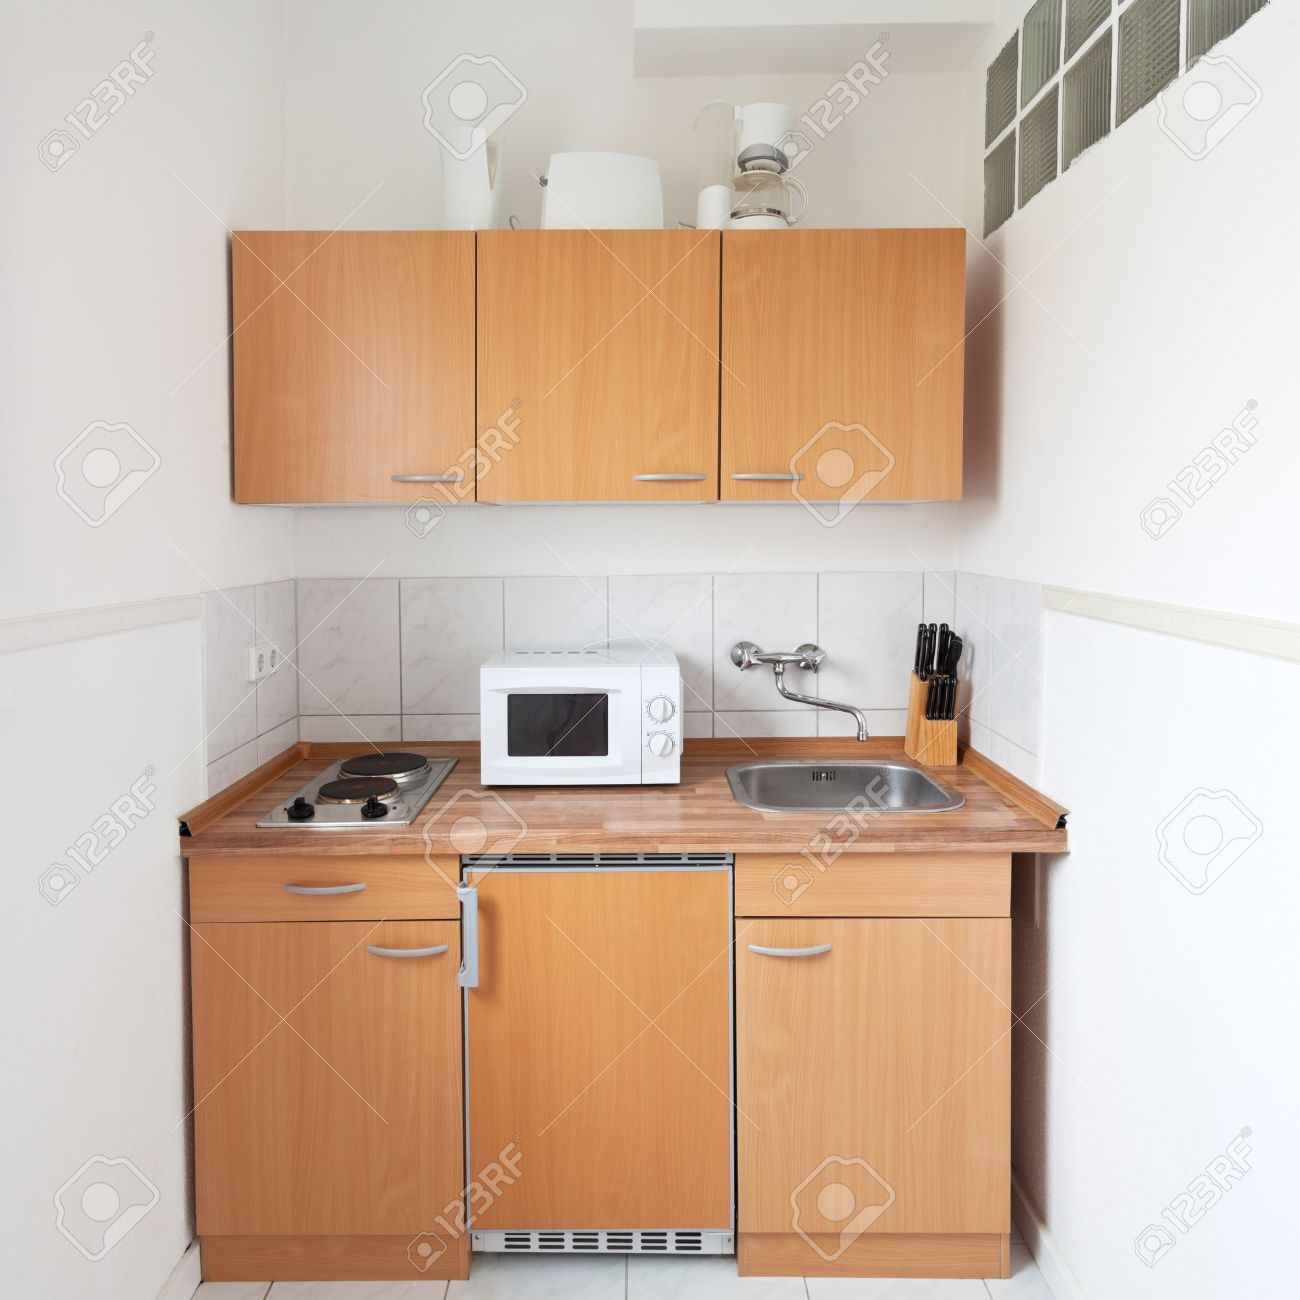 Simple kitchen with furniture set and kitchen equipment stock photo 23209106